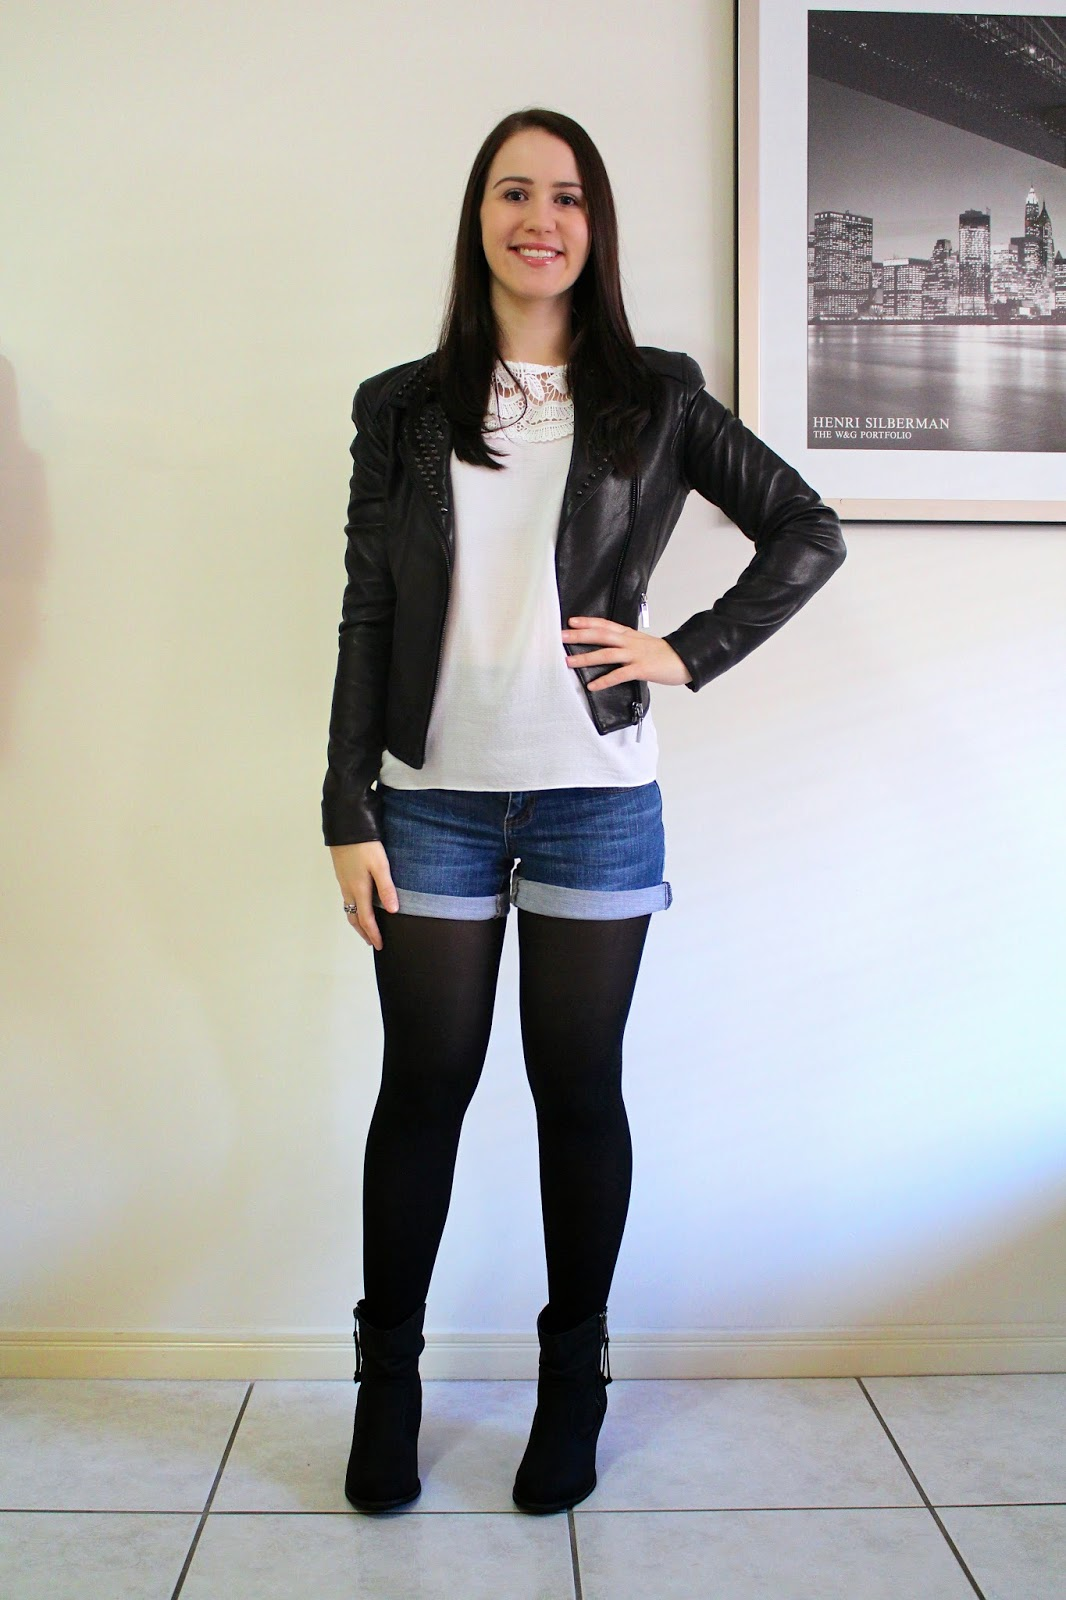 Denim shorts, black opaque tights, white lace top, black studded leather jacket, black booties, mixed metal rings, everyday outfit, nighttime outfit, petite girl outfit, denim shorts and tights outfit, leather outfit